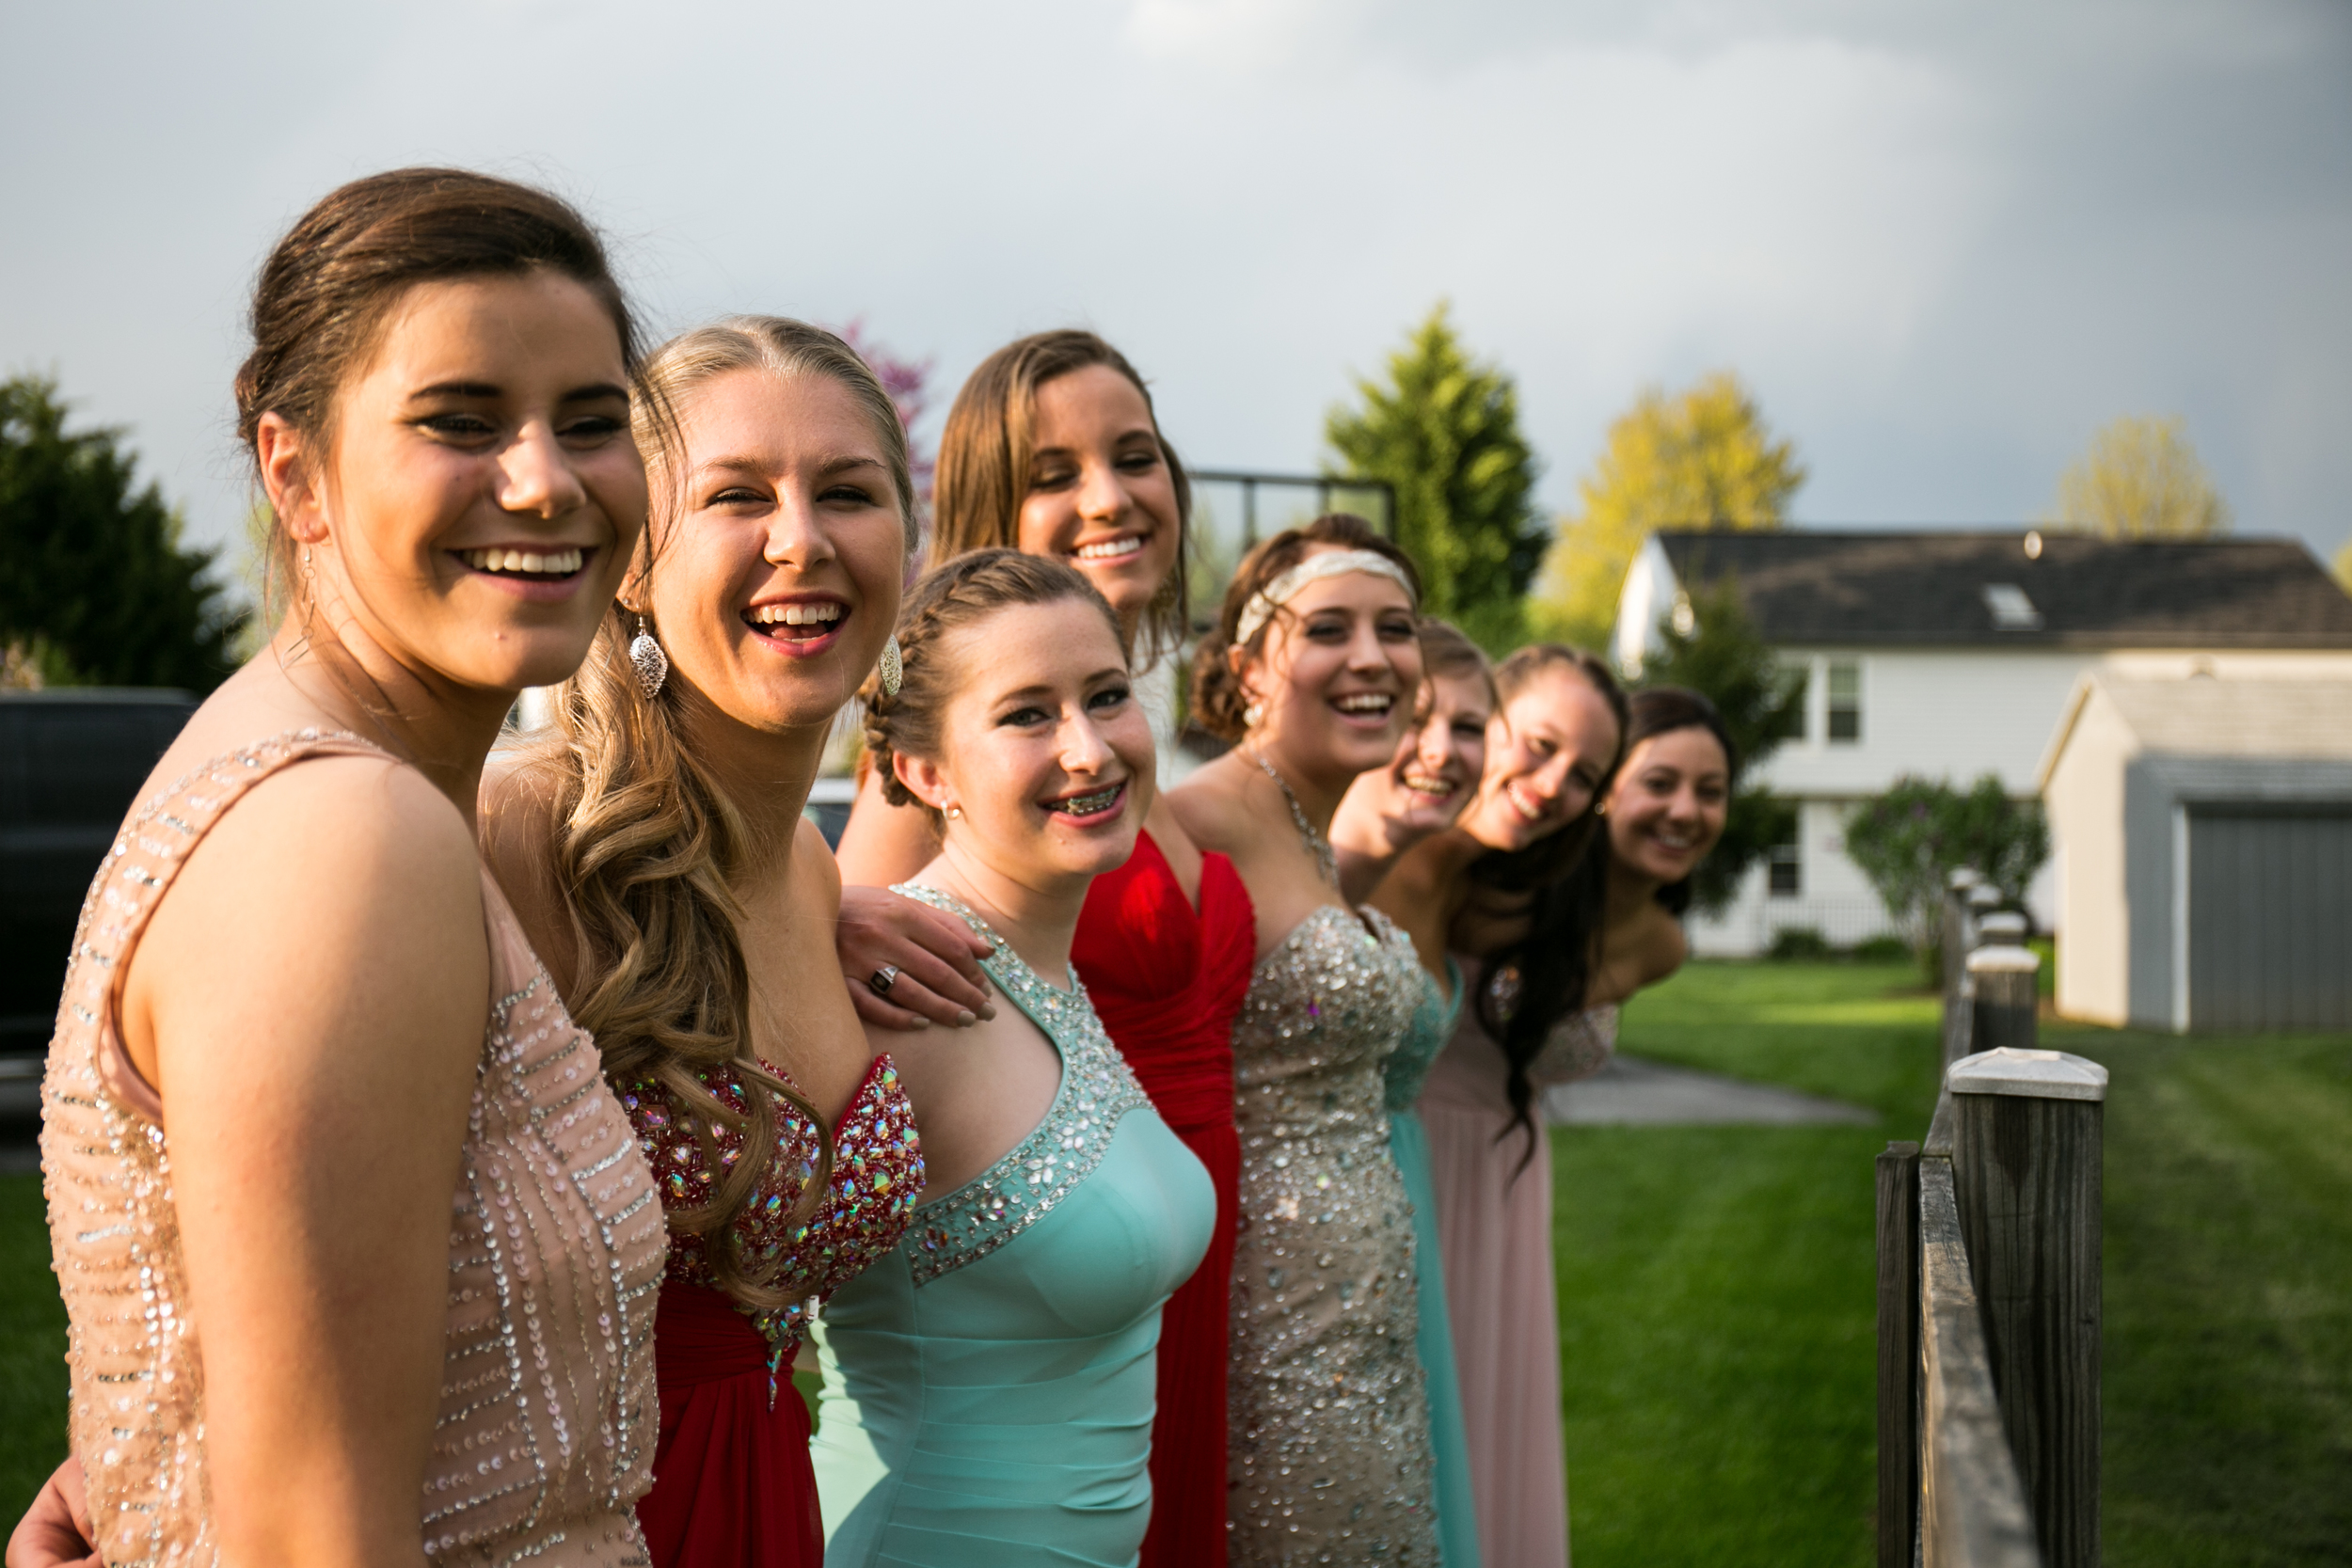 Mount-De-Sales-Pre-Prom-May-2014-25.jpg